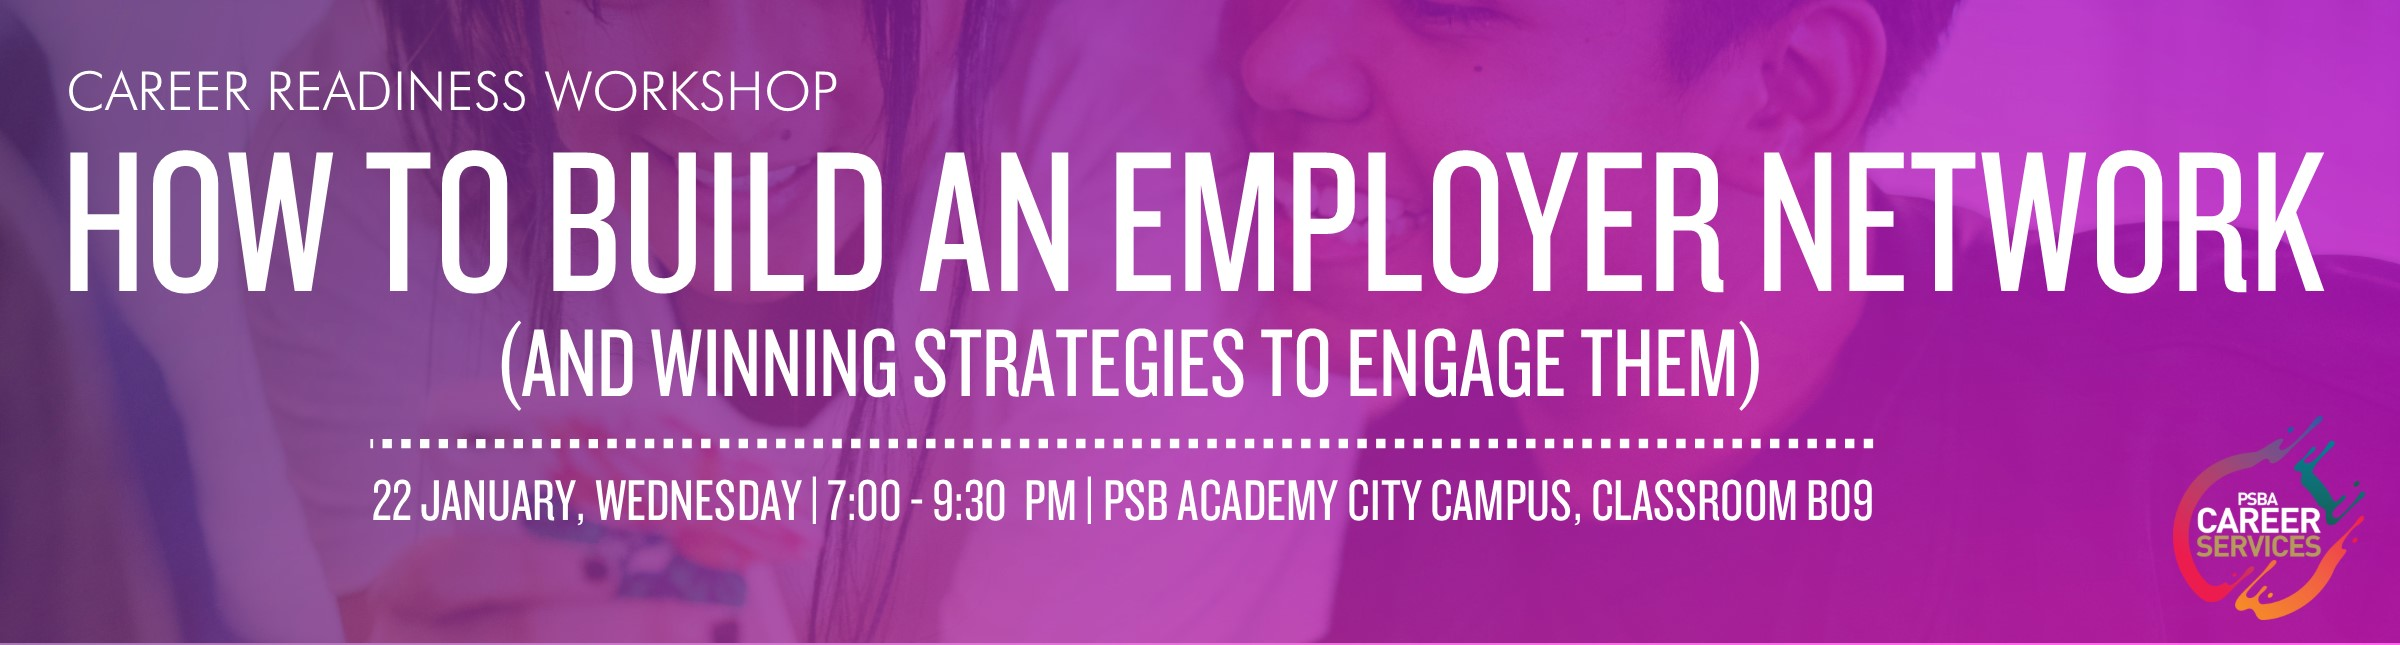 Career Workshop: How to Build an Employer Network (And Winning Strategies to Engage Them) Banner Image